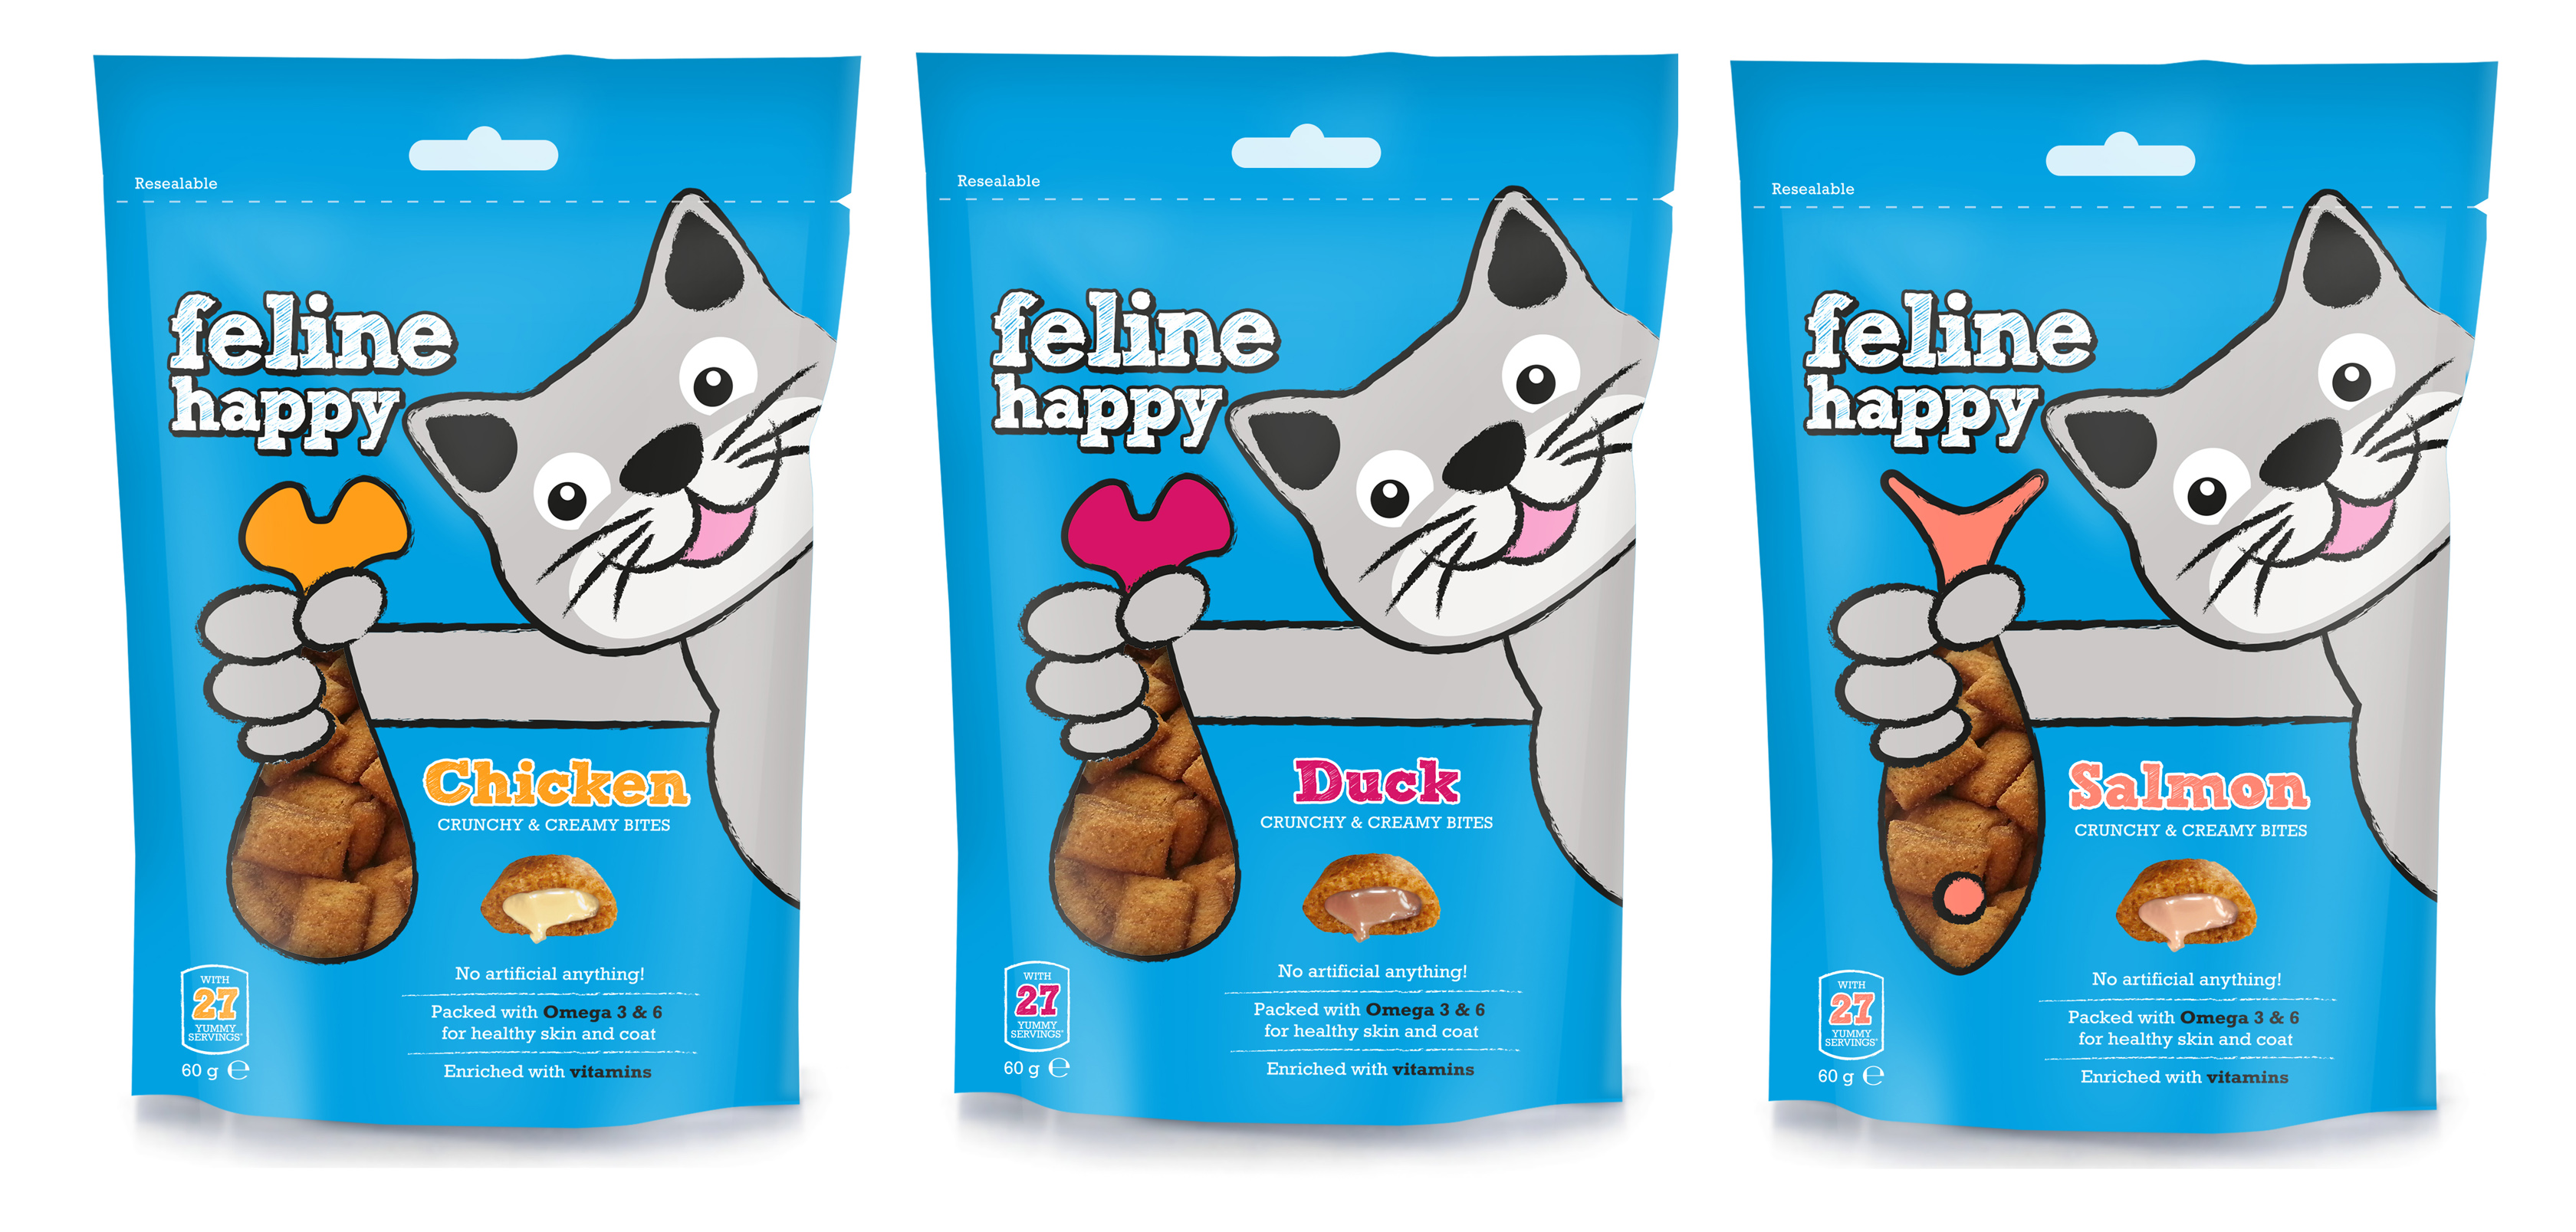 Feline Happy Range